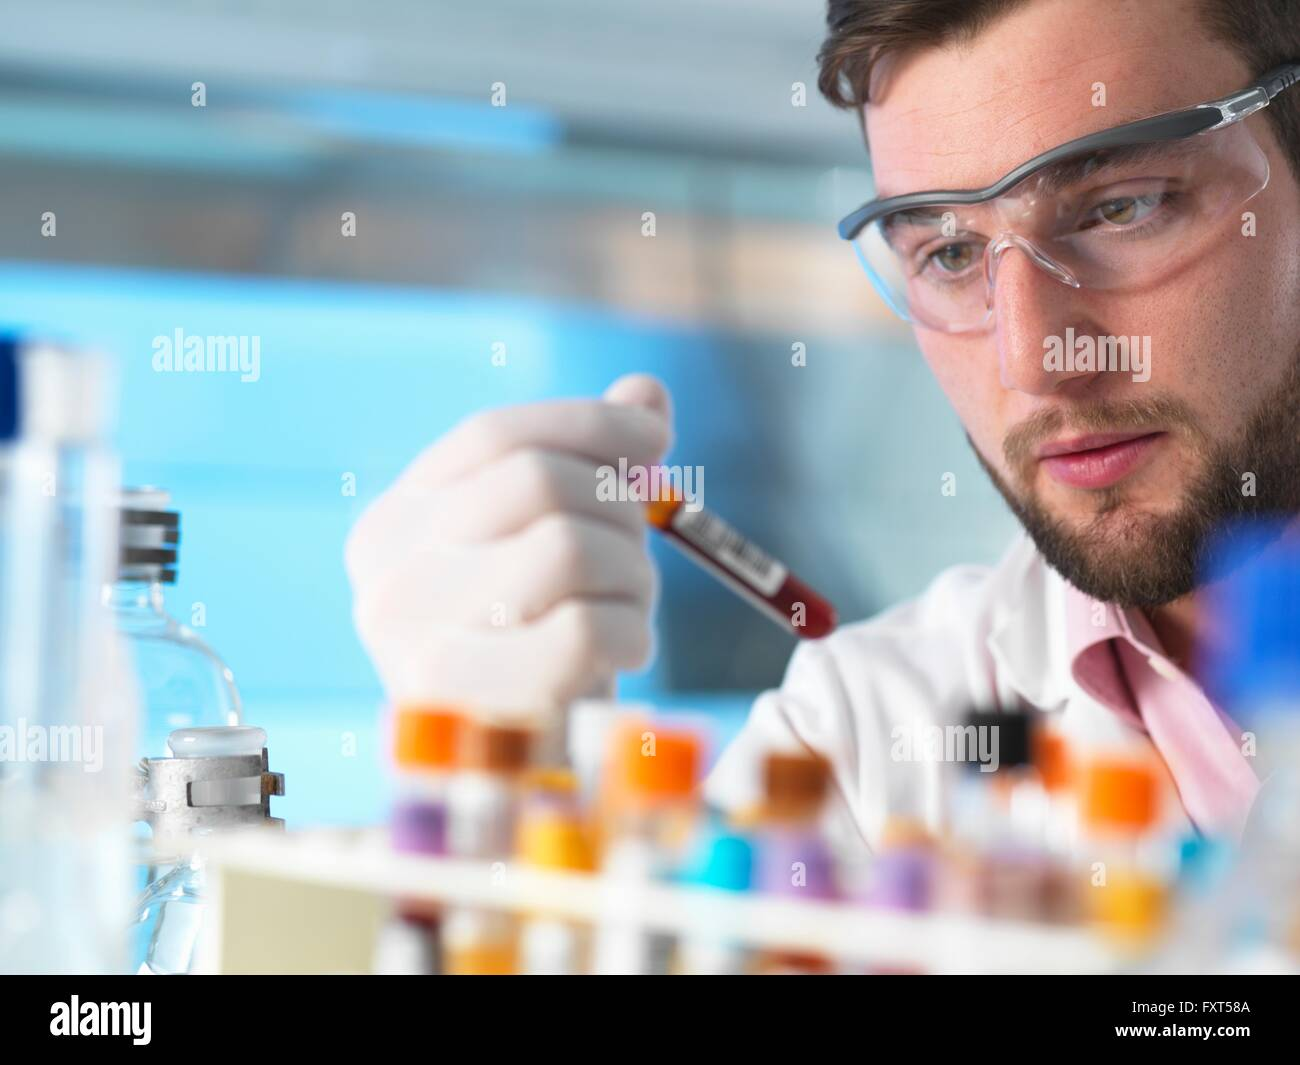 Doctor examining patient medical samples in laboratory - Stock Image